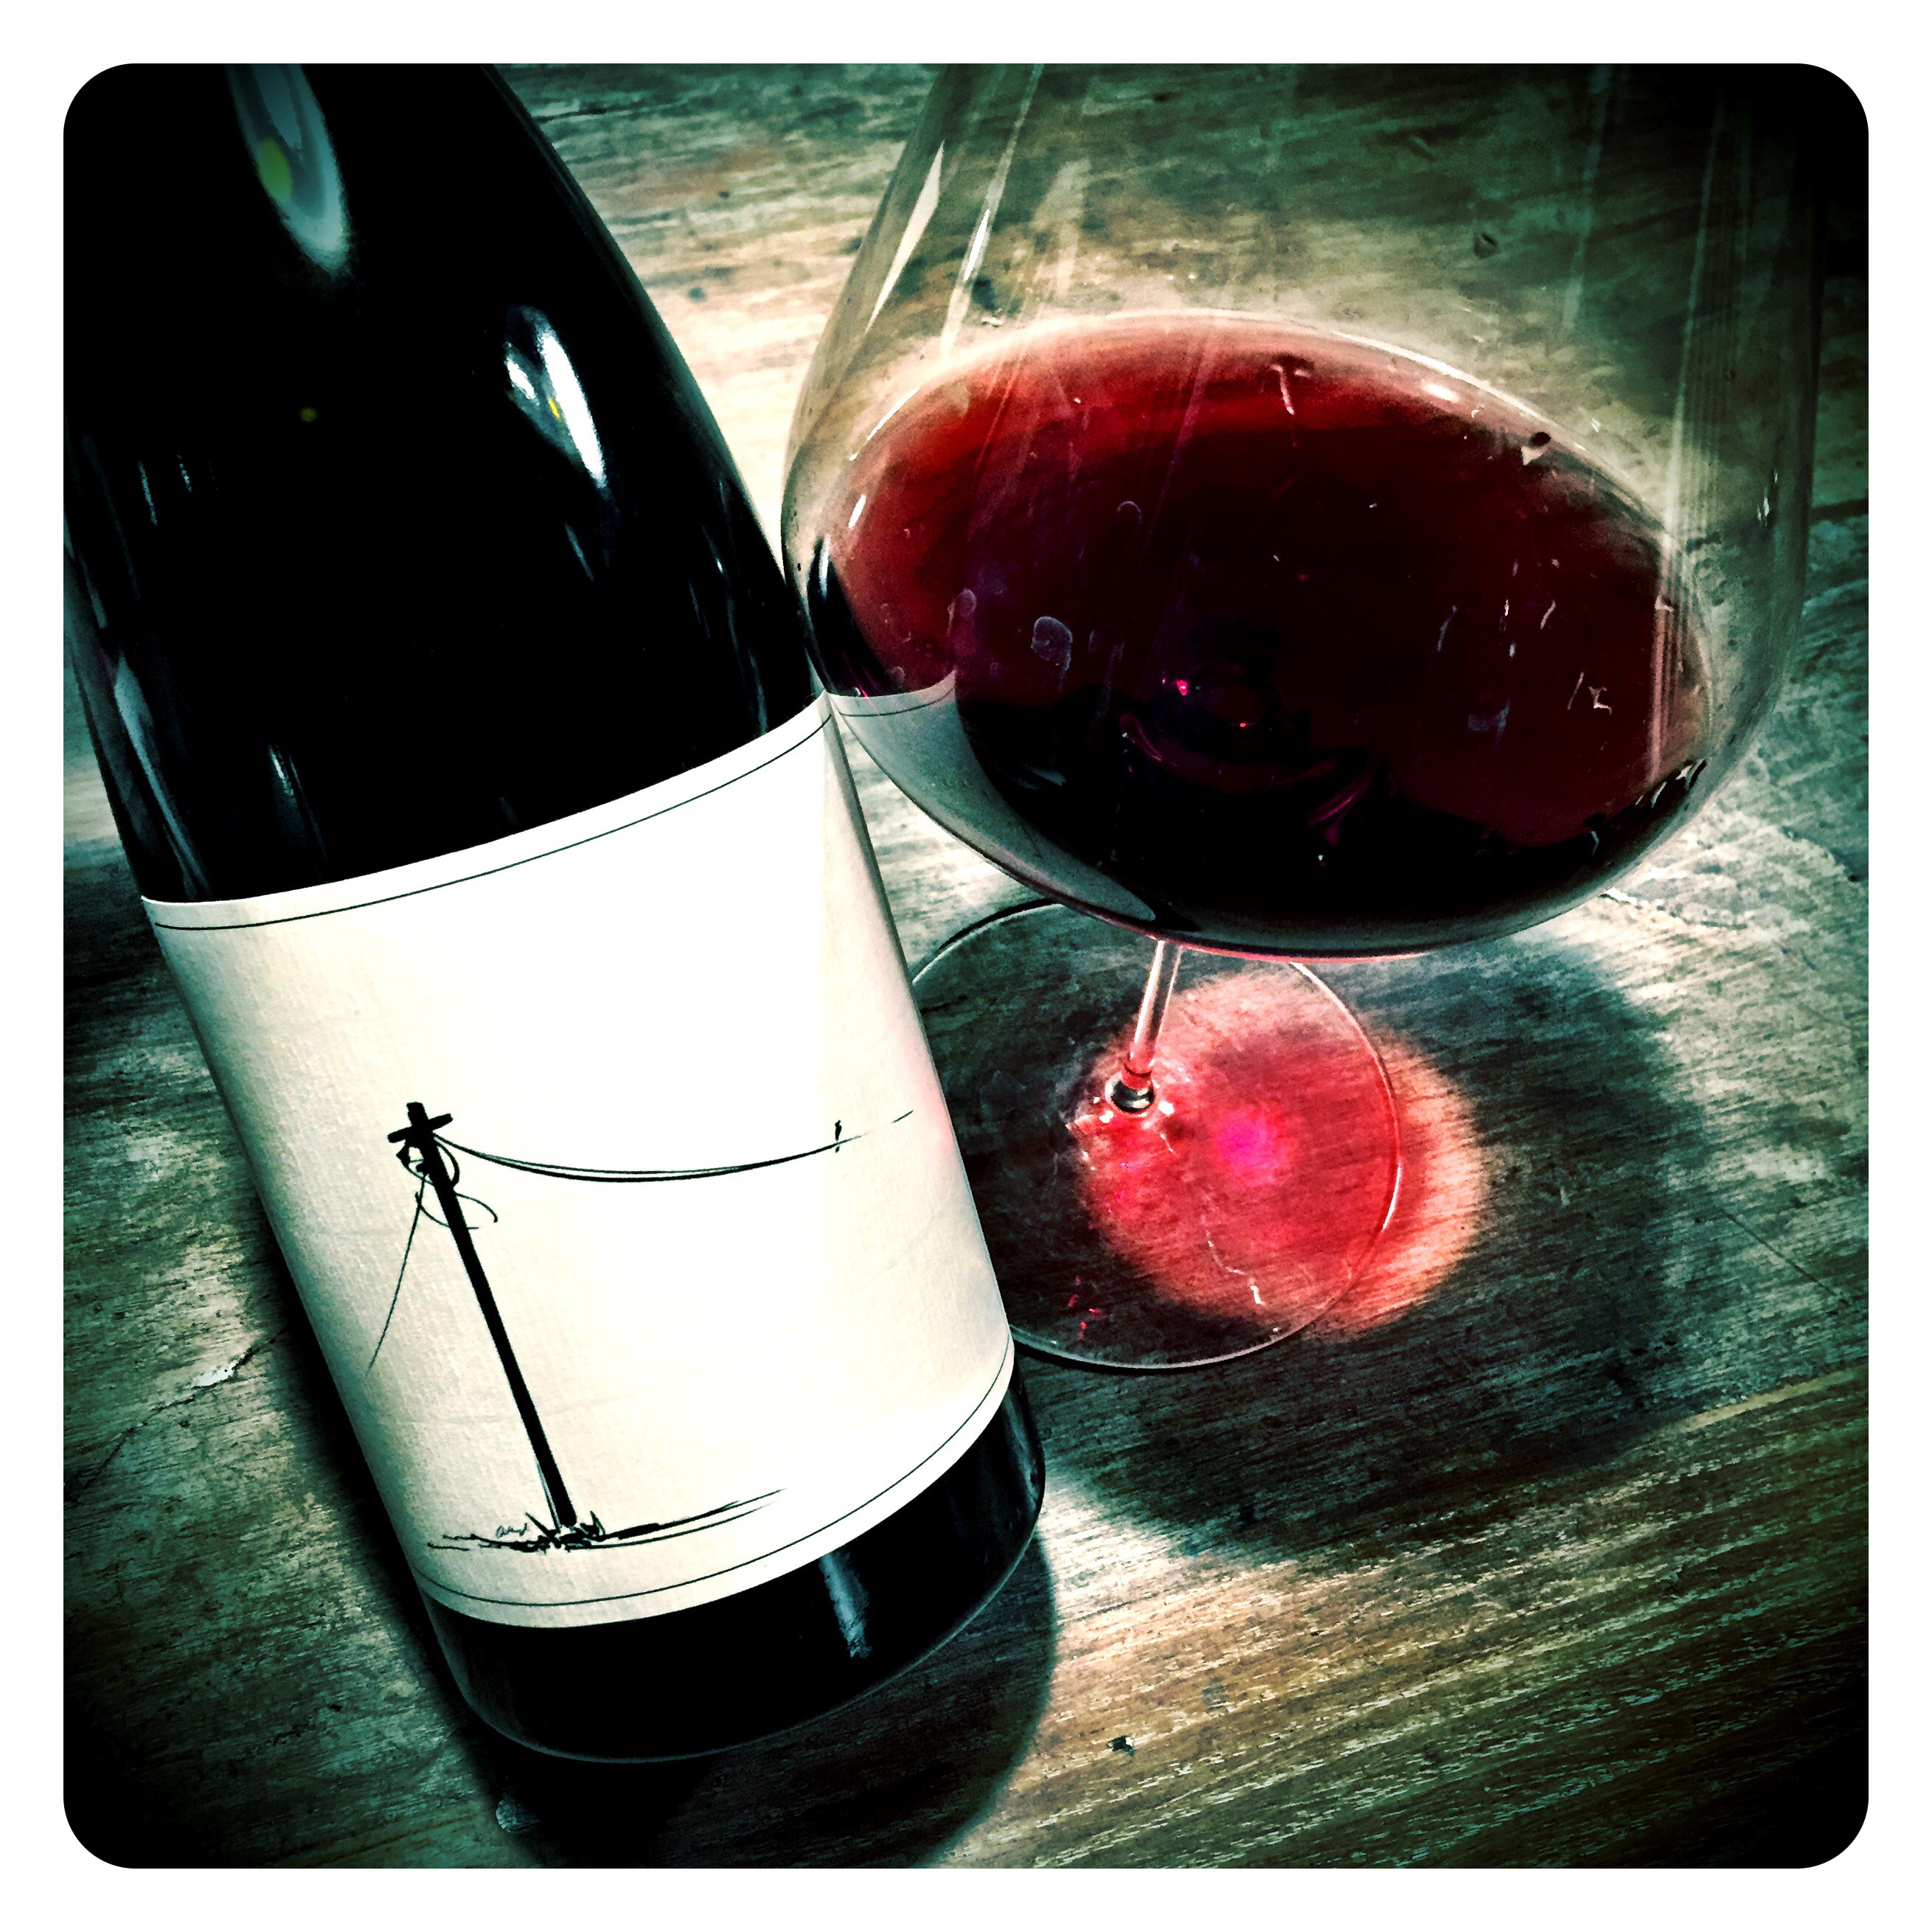 The 2014 Was The Maiden Release Of The Tantalising Follow The Line Red A Blend Of 58 Cinsaut From Darling 21 Grenache From Piekenierskloof